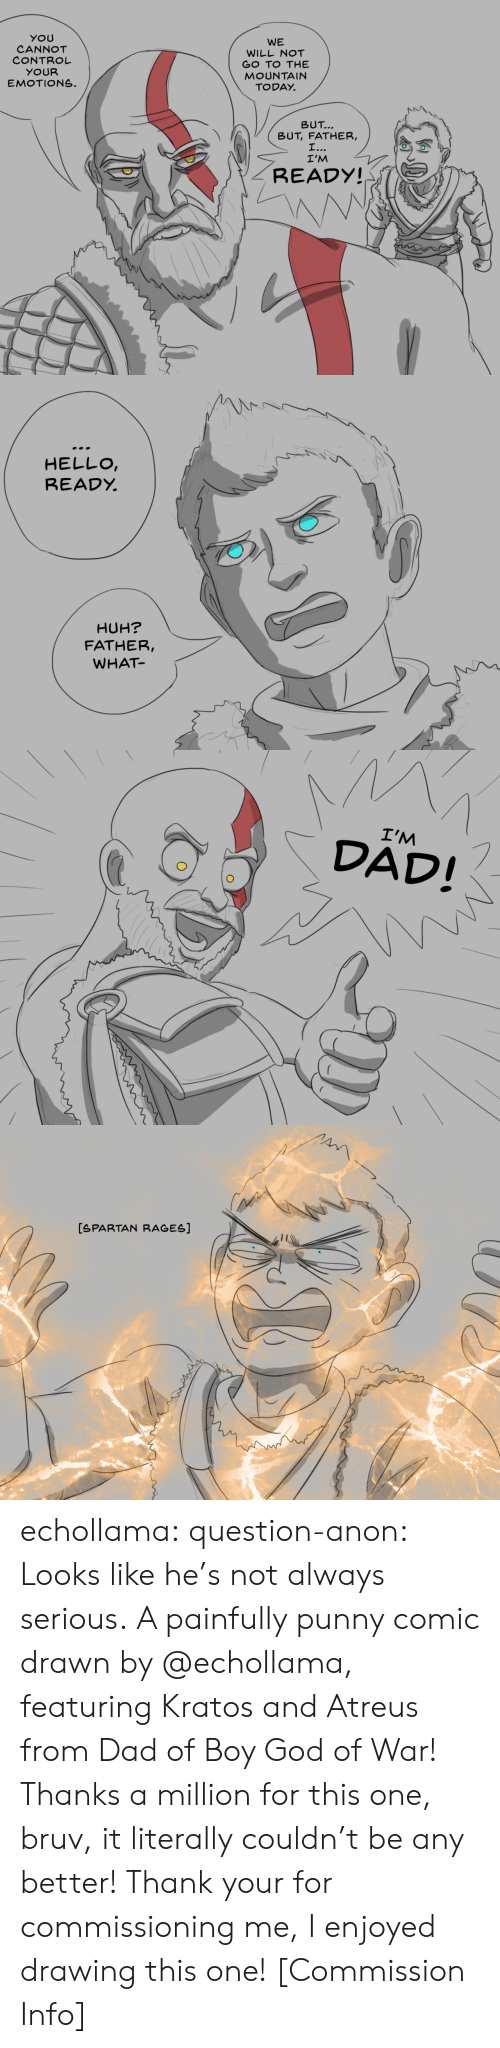 Punny: YOU  CANNOT  CONTROL  YOUR  EMOTIONS.  WE  WILL NOT  GO TO THE  MOUNTAIN  TODAY.  トN\  \  BUT  BUT, FATHER,  I'M  READY!   HELLO  READỵ  HUH?  FATHER,  WHAT   I'M  DAD!   [SPARTAN RAGES] echollama:  question-anon:  Looks like he's not always serious. A painfully punny comic drawn by @echollama, featuringKratos and Atreus from Dad of Boy God of War! Thanks a million for this one, bruv, it literally couldn't be any better!  Thank your for commissioning me, I enjoyed drawing this one!    [Commission Info]